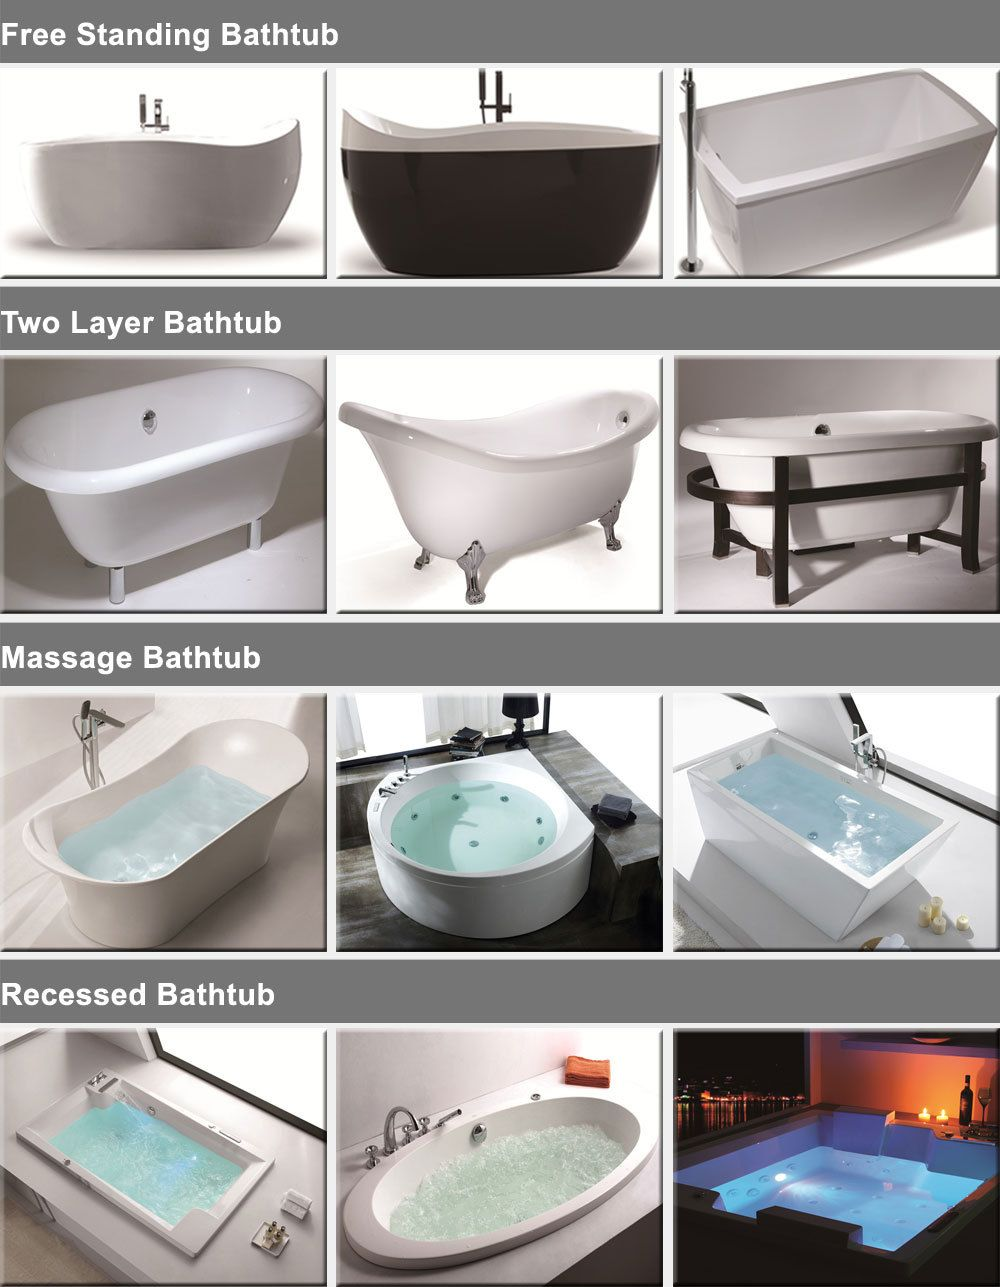 bathroom bathtub of guide shower tub types reviews bath best different charming and faucet leak faucets